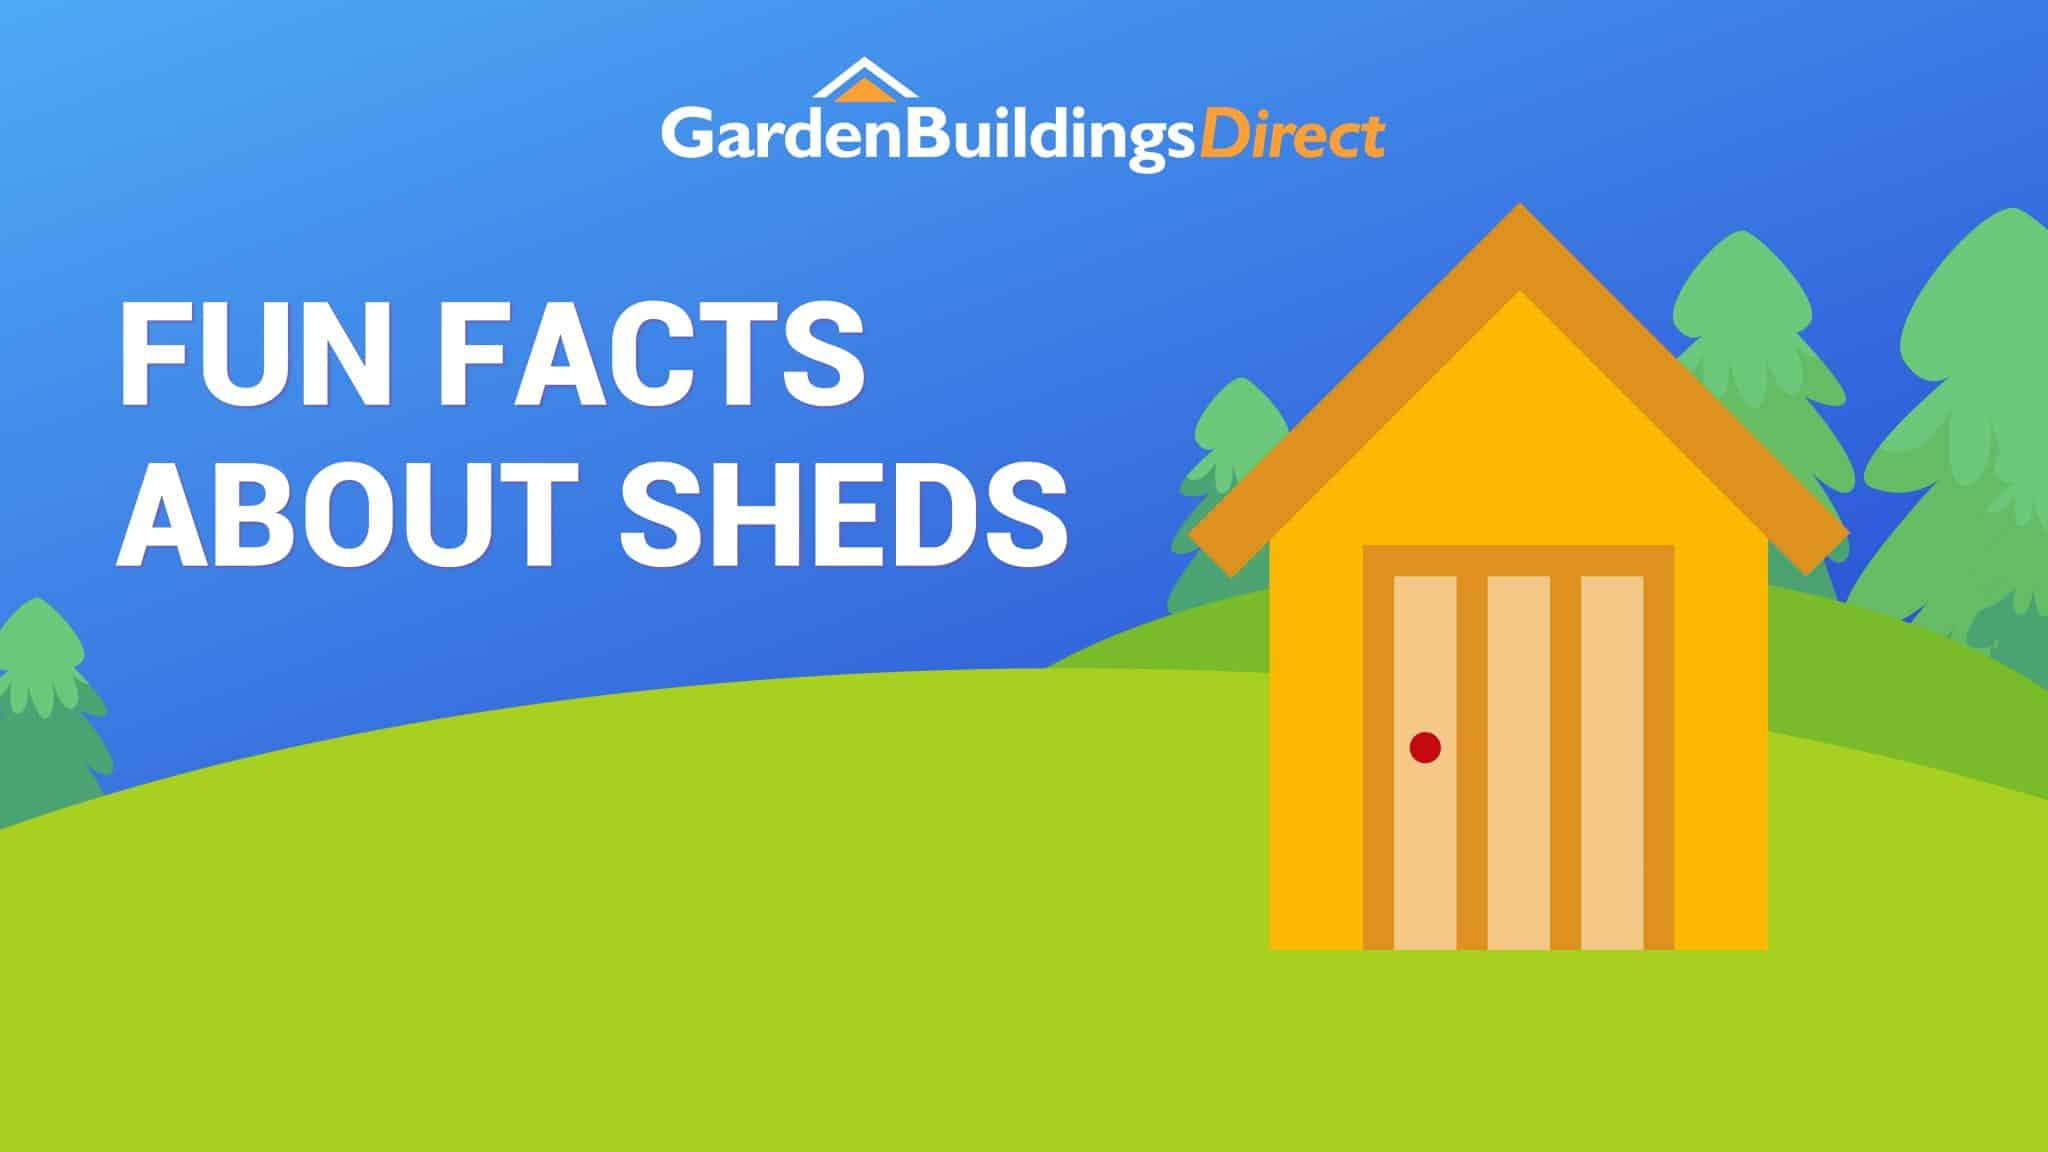 fun facts about sheds banner with garden buildings direct logo and cartoon shed stood on a green hill